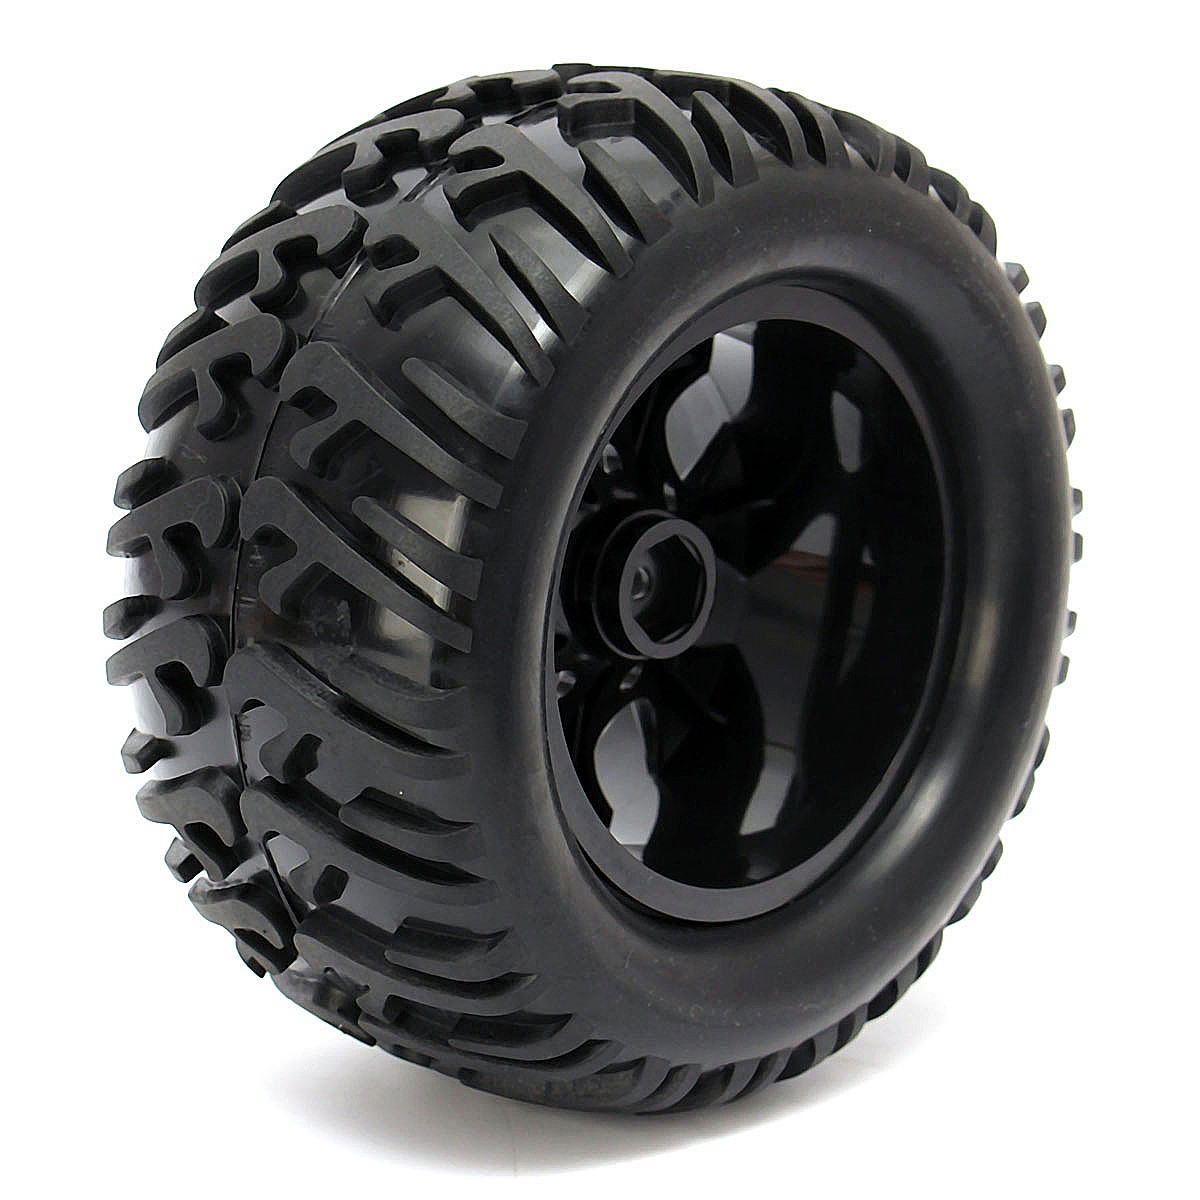 4PCS 12mm Racing Wheel Rim & Tires Redcat HSP 1:10 Monster truck RC On-Road Car Parts 12mm Hub 88005 Toys Accesseries hpu6900pic 433 ib 2u ipc card 02027 12030 80 100% test good quality